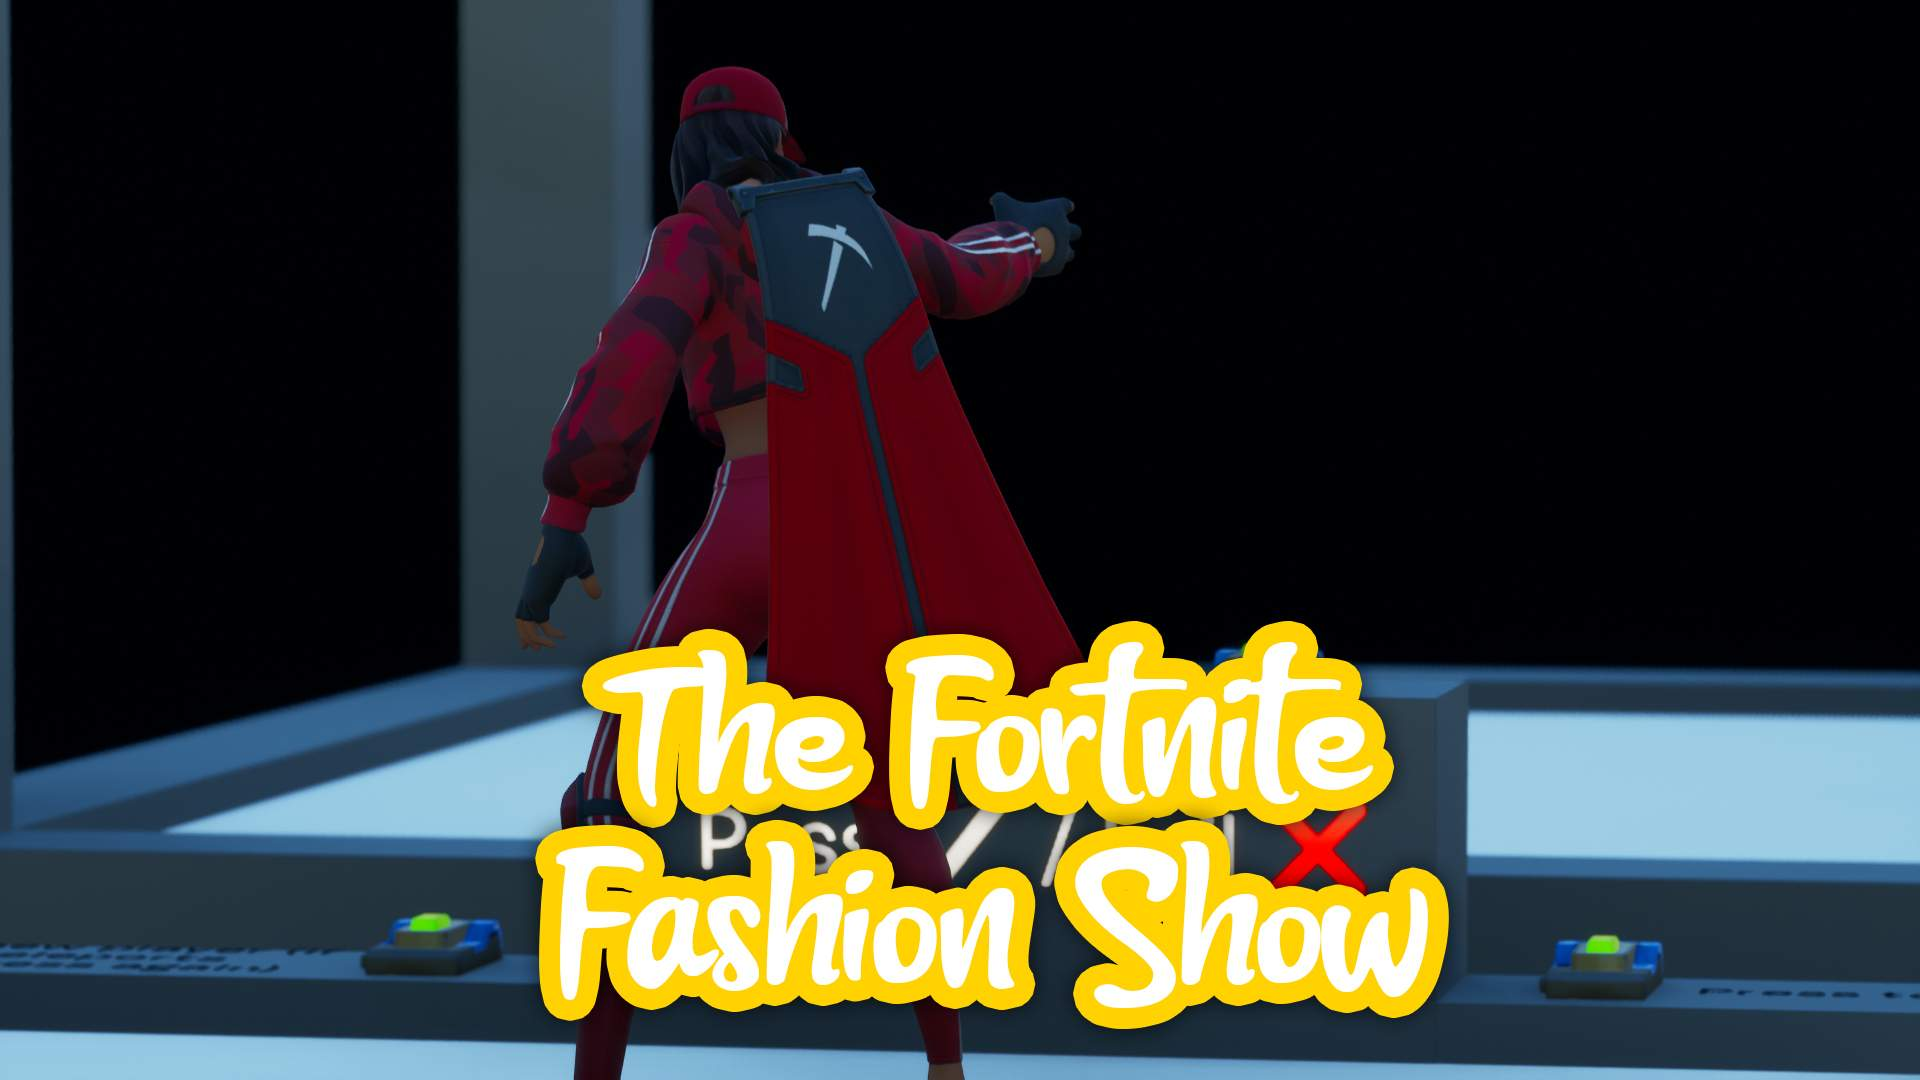 THE FORTNITE FASHION SHOW